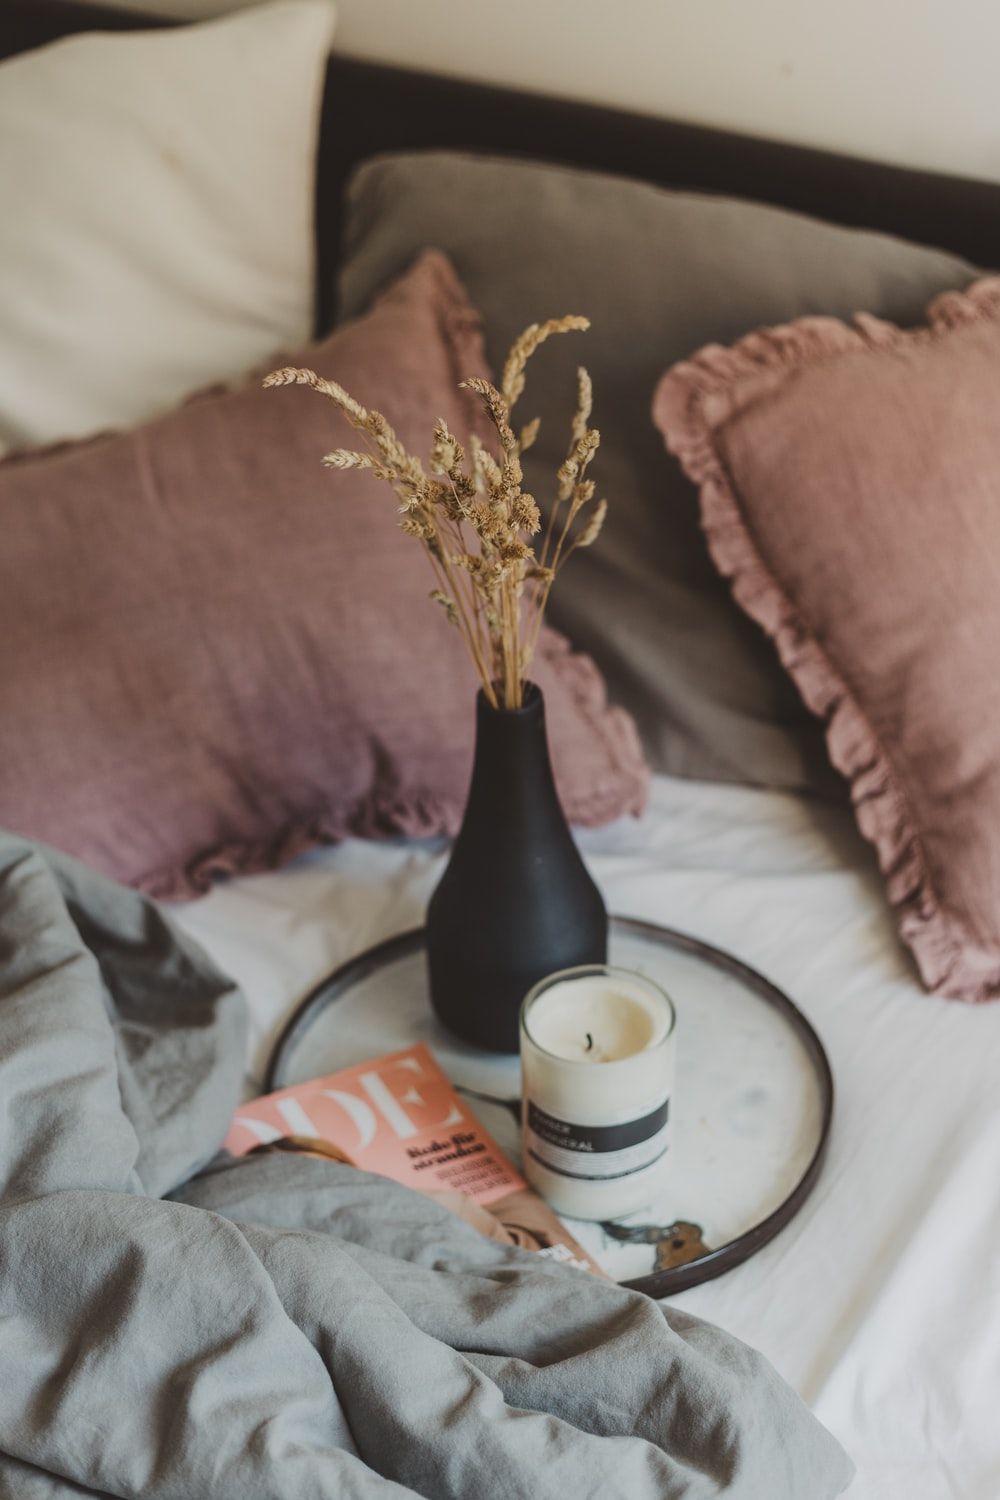 white candle beside brown vase on tray